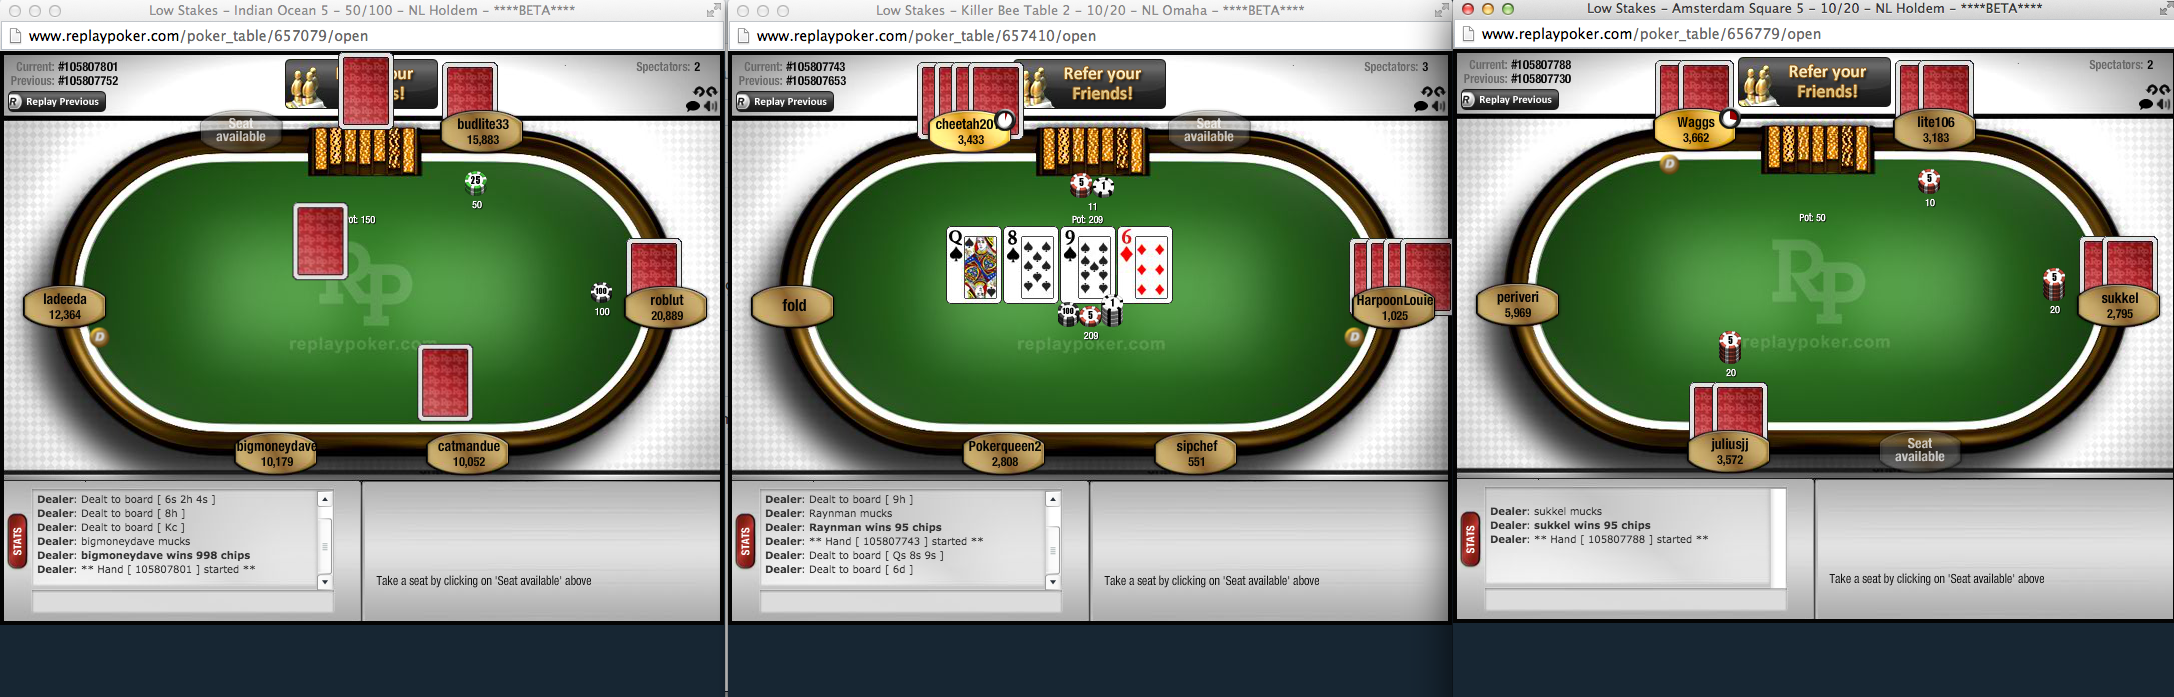 Can i play more than one game at a time replay poker to open multiple tables just click play now on any tables you want to join each new table will open in a new window gamestrikefo Images